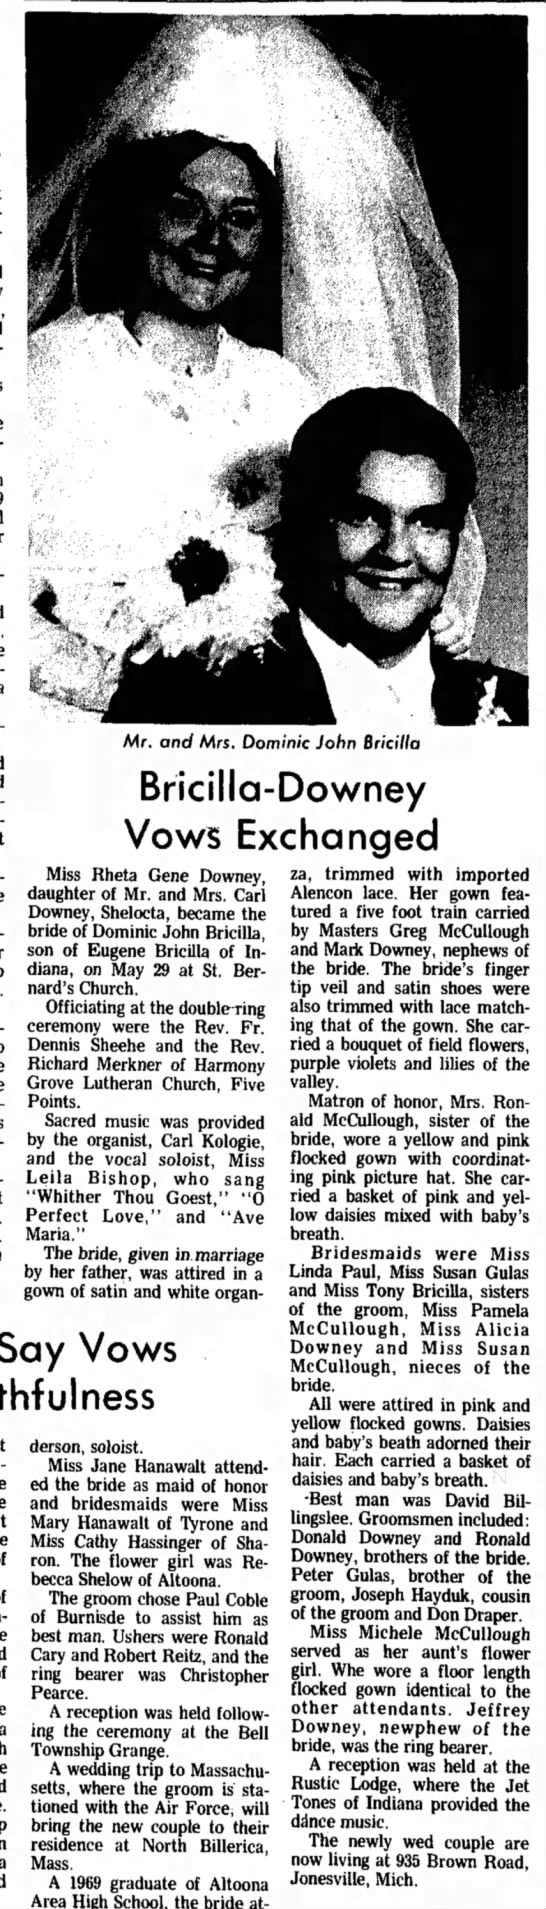 Rheta and Dominic Bricillo wedding announcement-29 Jun 1971-Indiana Gazette -